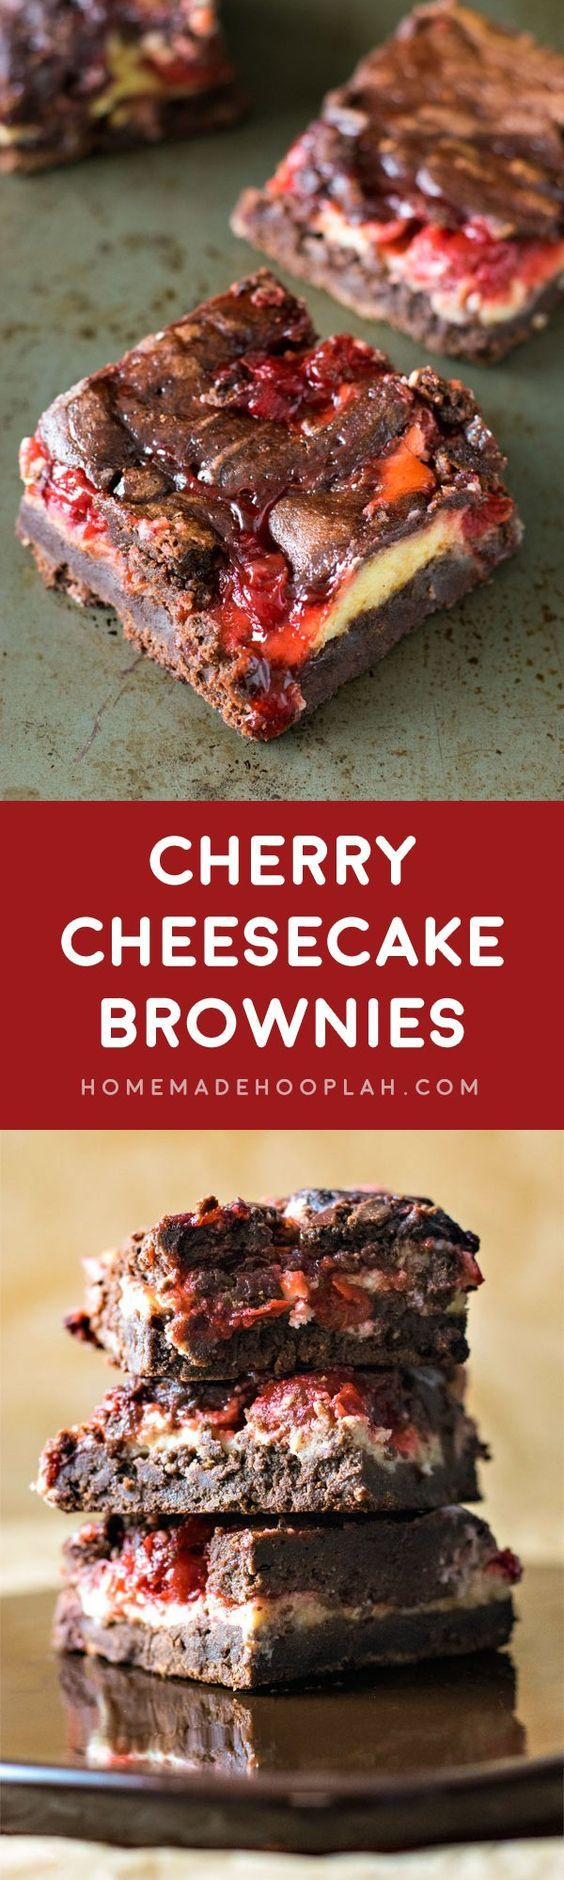 Cherry Cheesecake Brownies! The ultimate brownie recipe baked with swirls of cheesecake and cherry pie filling. Cherry Cheesecake Brownies! The ultimate brownie recipe baked with swirls of cheesecake and cherry pie filling. HomemadeHooplah